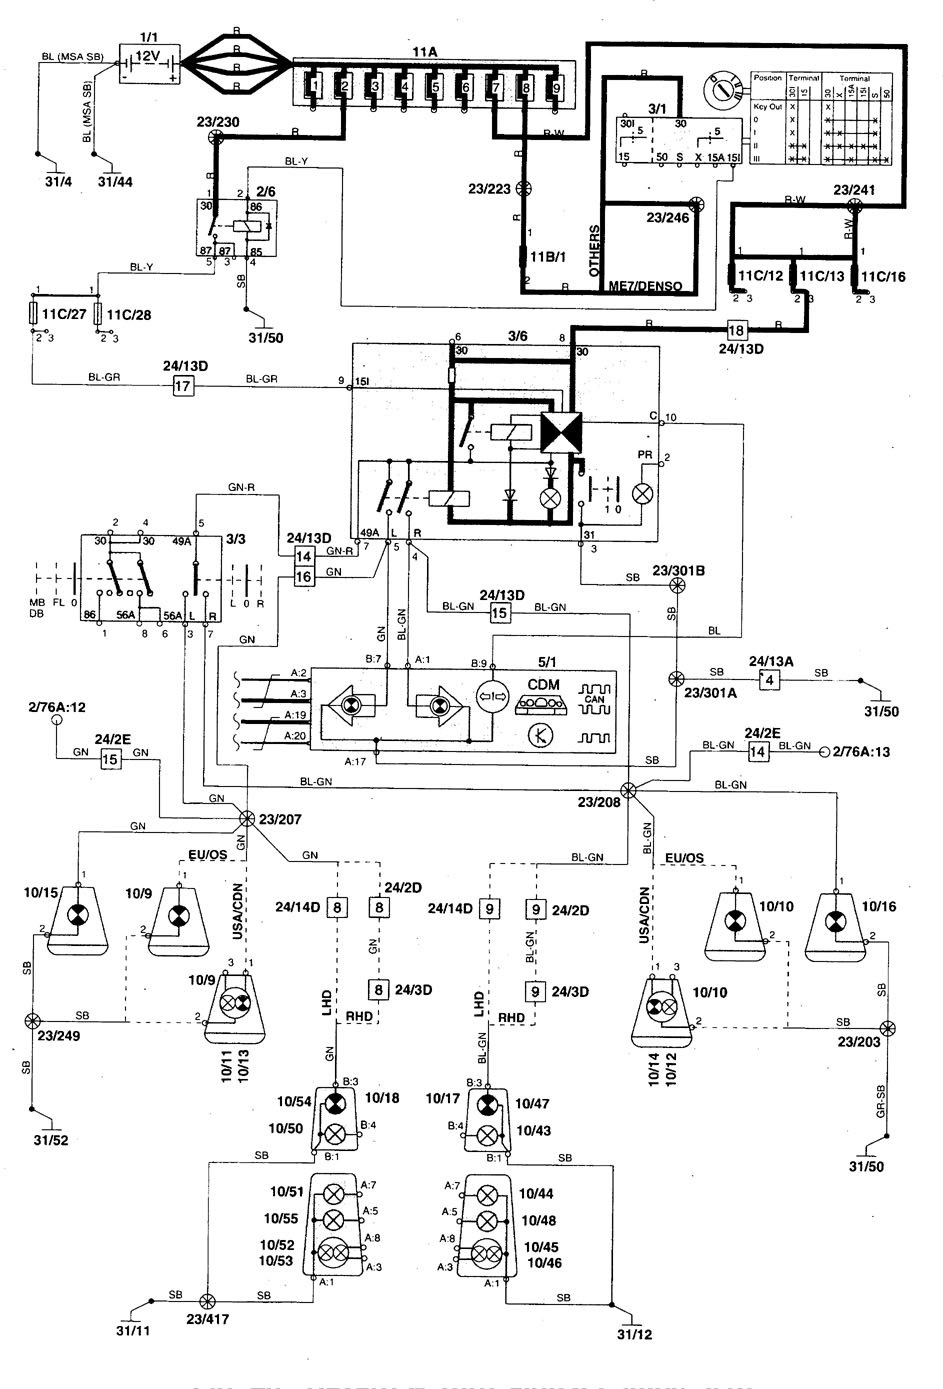 WRG-2562] Volvo C70 Wiring Diagram Pdf on 1998 land rover discovery wiring diagram, 1995 volvo 850 wiring diagram, 2005 volvo xc90 wiring diagram, 2006 volvo xc90 wiring diagram, 1998 pontiac grand am wiring diagram, 1995 volvo 960 wiring diagram, 1998 bmw z3 wiring diagram, 1998 oldsmobile intrigue wiring diagram, 1990 volvo 740 wiring diagram, 2004 volvo xc90 wiring diagram, 1998 cadillac seville wiring diagram, 1991 volvo 740 wiring diagram, 1999 volvo s80 fuse box diagram, 2004 volvo s60 fuse diagram, volvo s70 wiring diagram, 1998 nissan sentra wiring diagram, 1998 nissan pickup wiring diagram, 1998 chevrolet suburban wiring diagram, 1998 dodge intrepid wiring diagram, 2003 volvo xc90 wiring diagram,